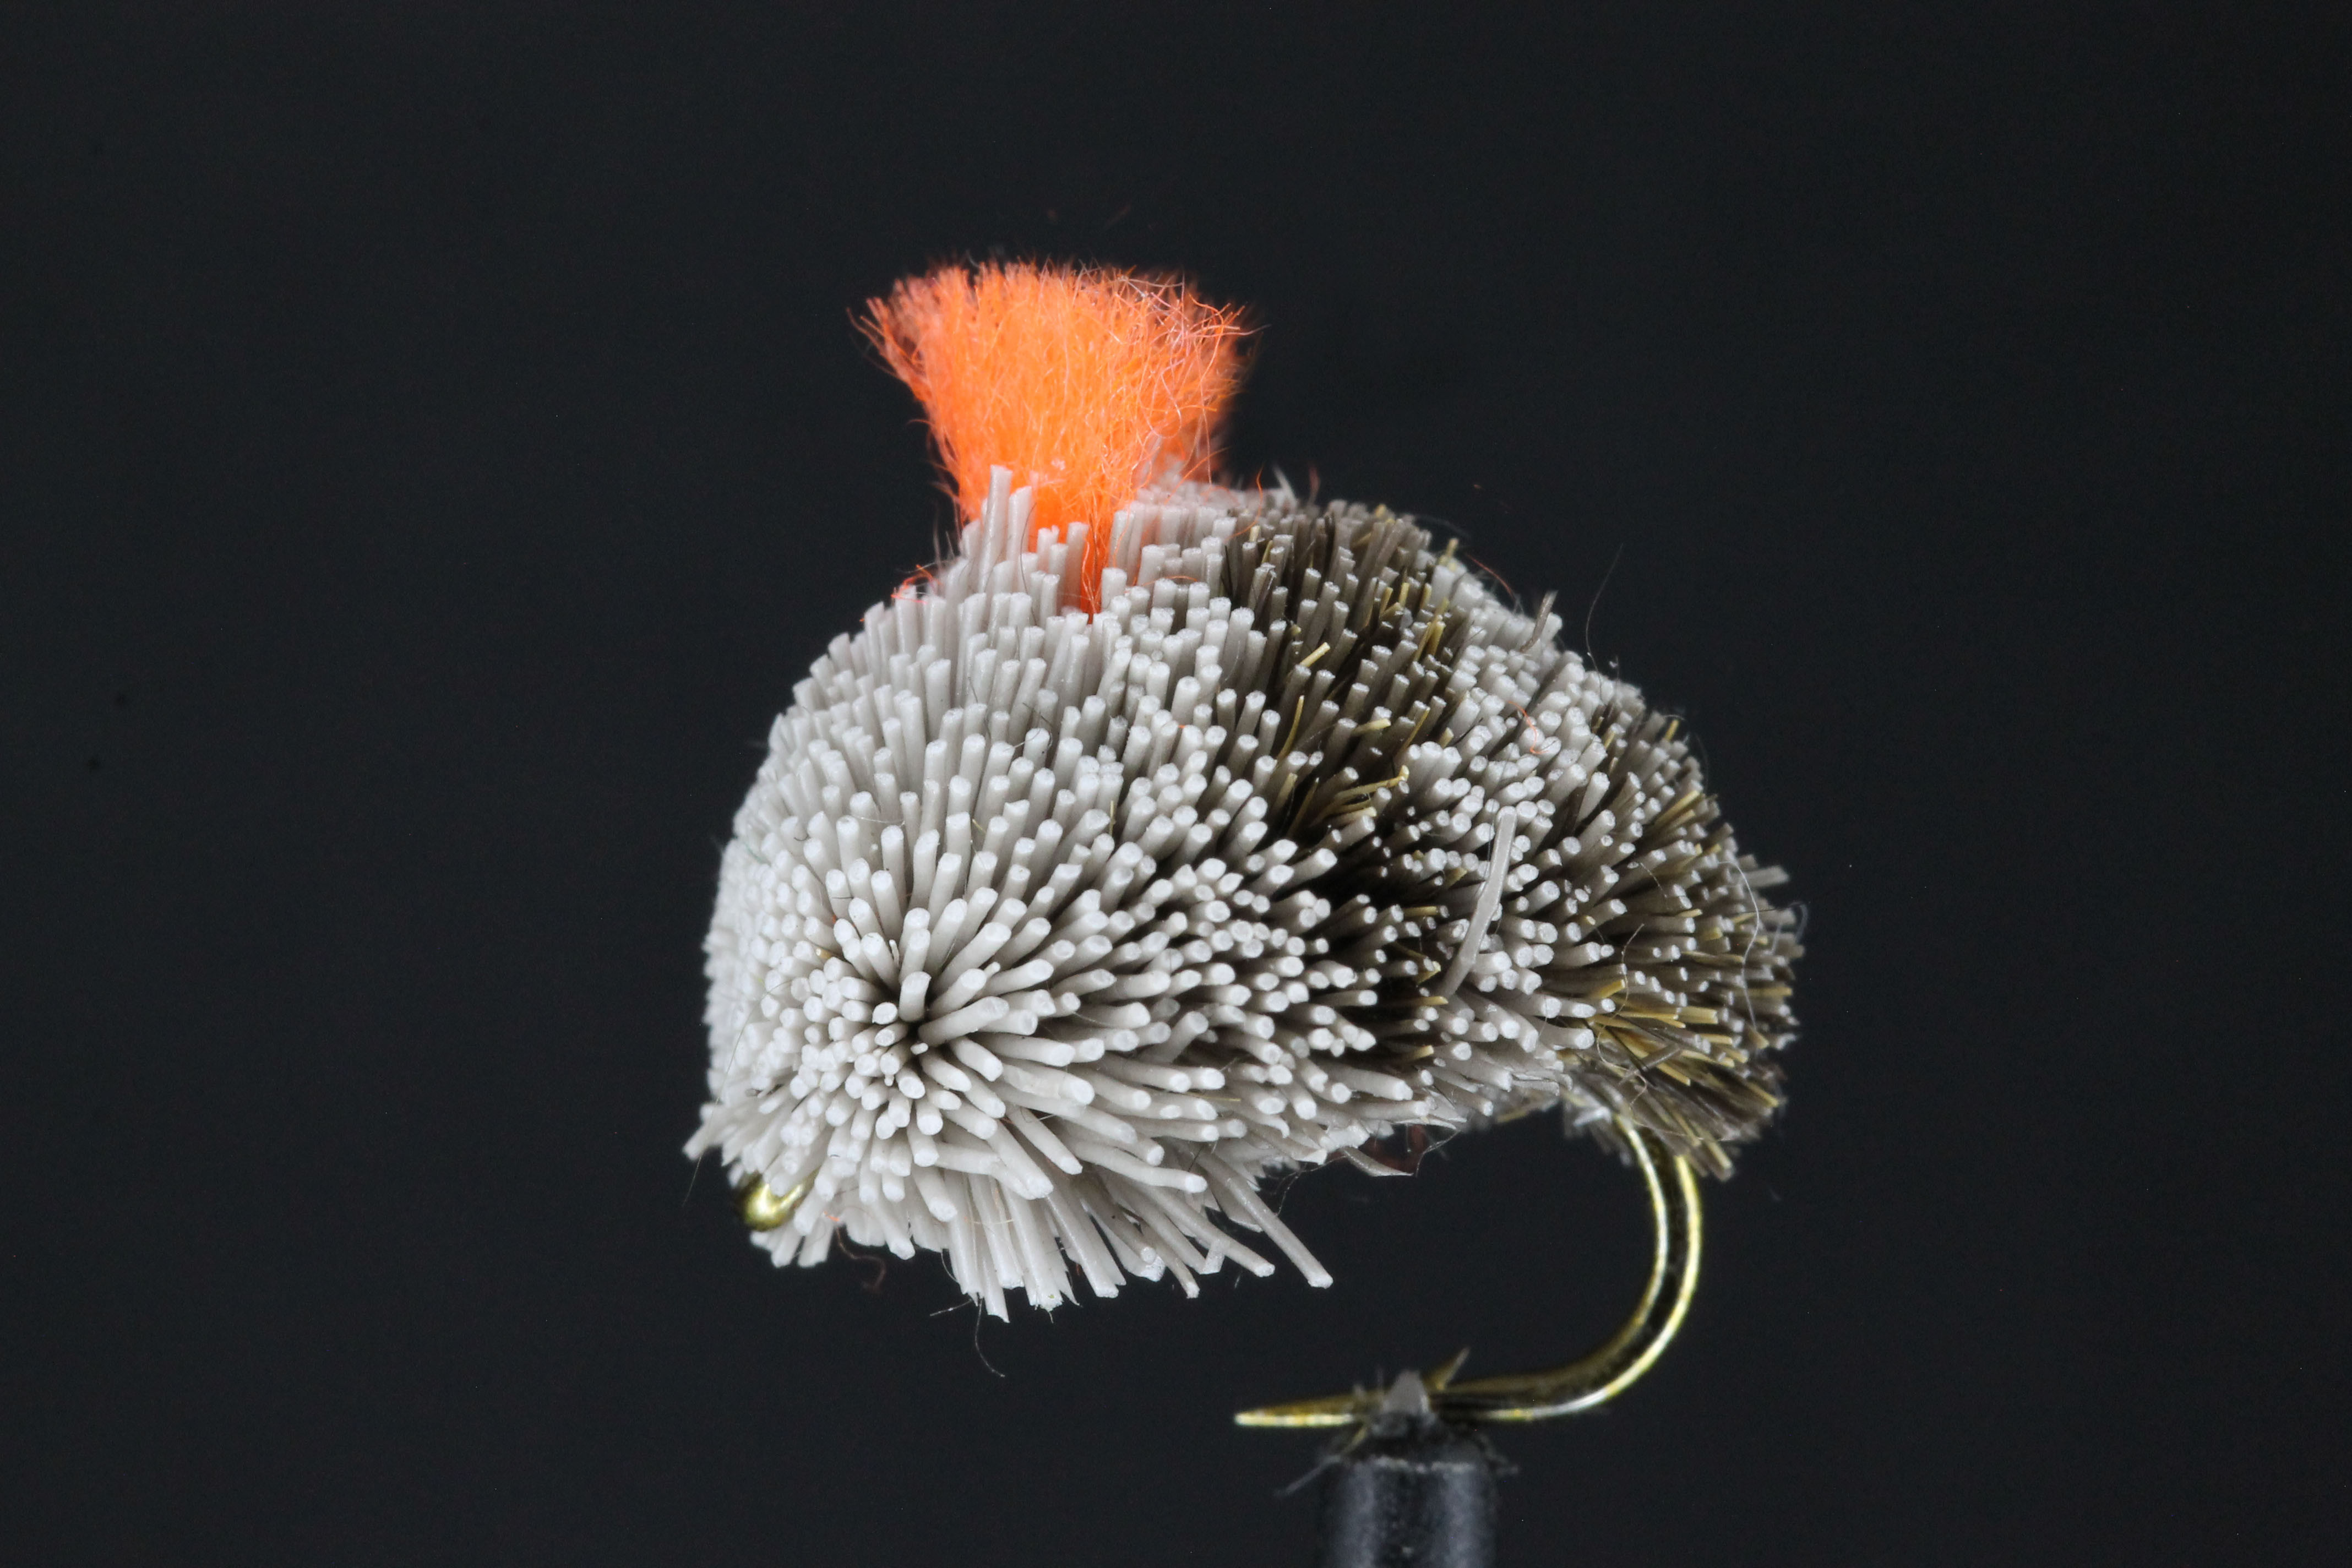 Pellet Fly With UV Red Indicator